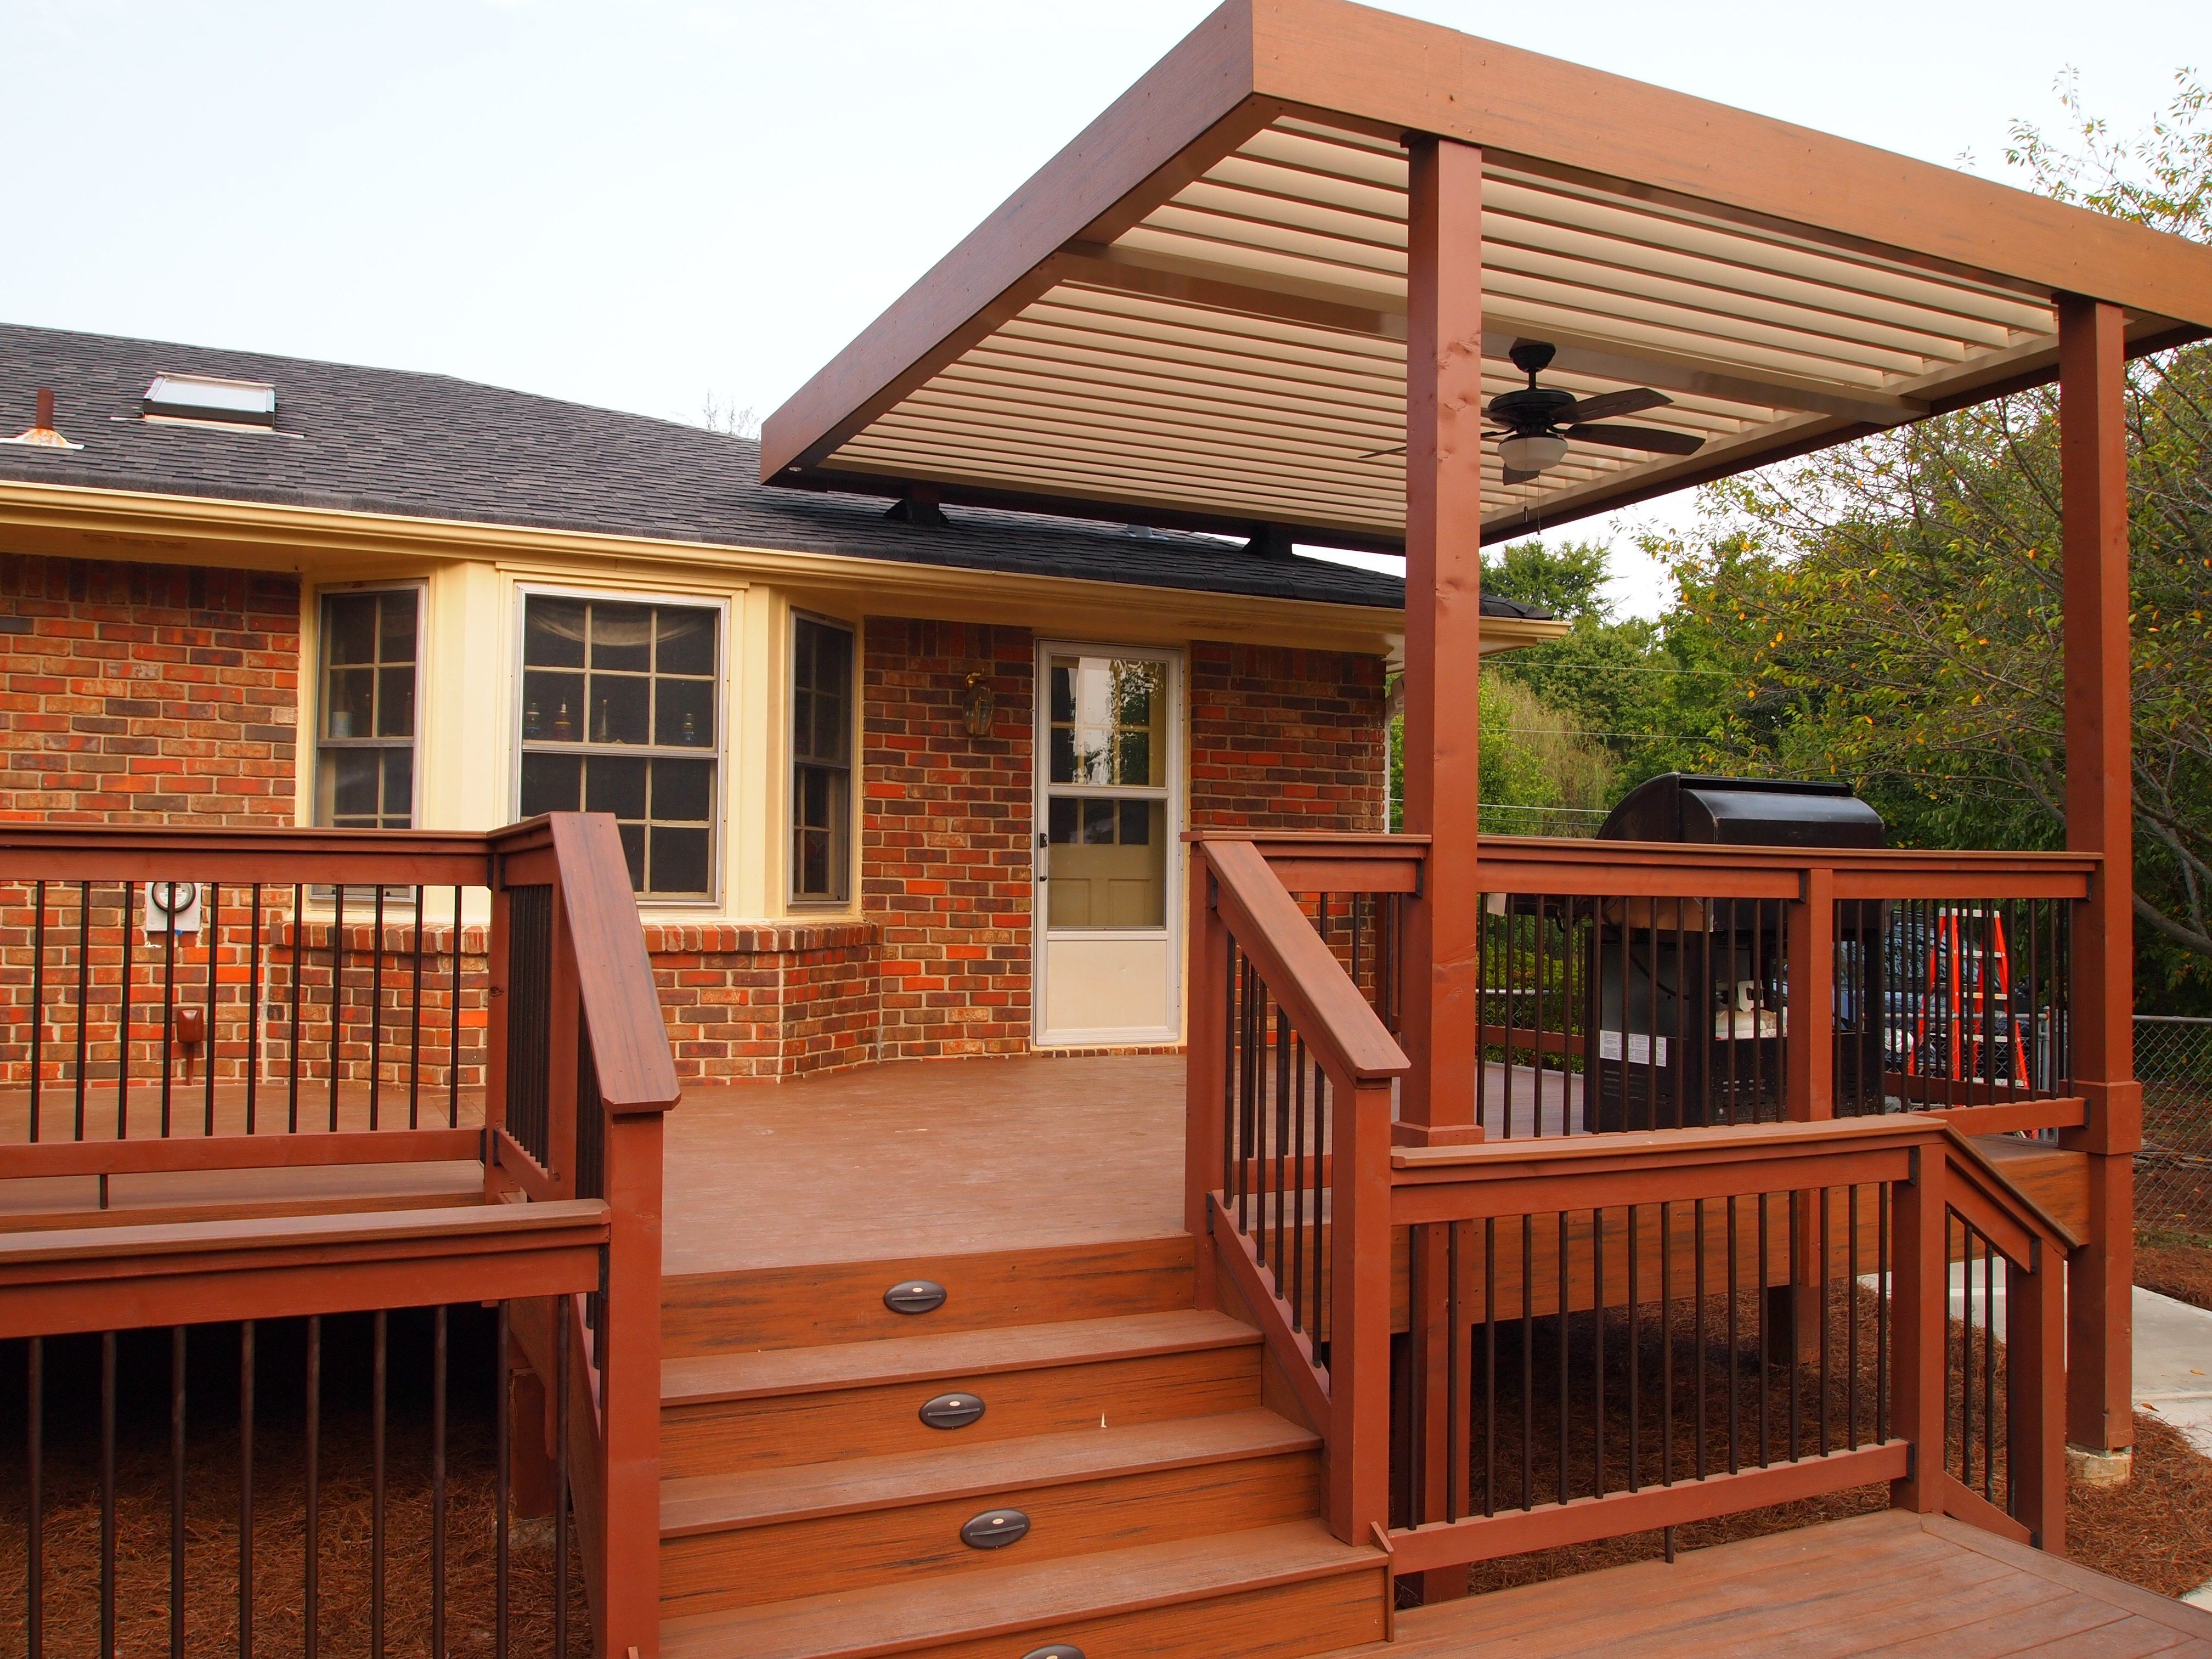 Deck Arbor Pavilions Gazebos Adjustable Patio Covers Outdoor with regard to size 4032 X 3024